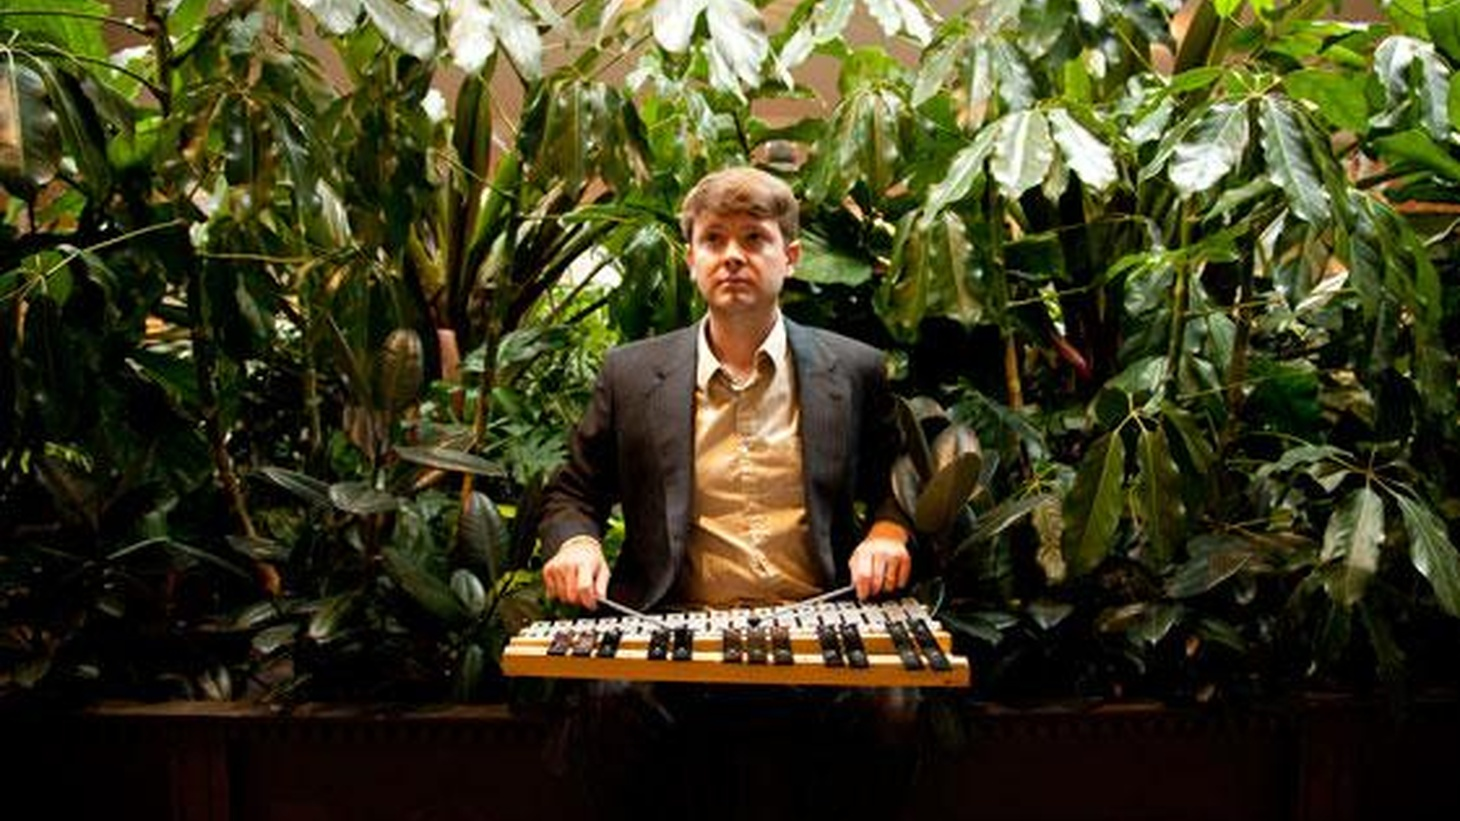 Bright Moments is the moniker for Kelly Pratt, who's toured as part of Coldplay and LCD Soundsystem. He created this project to make his own music in his spare time.